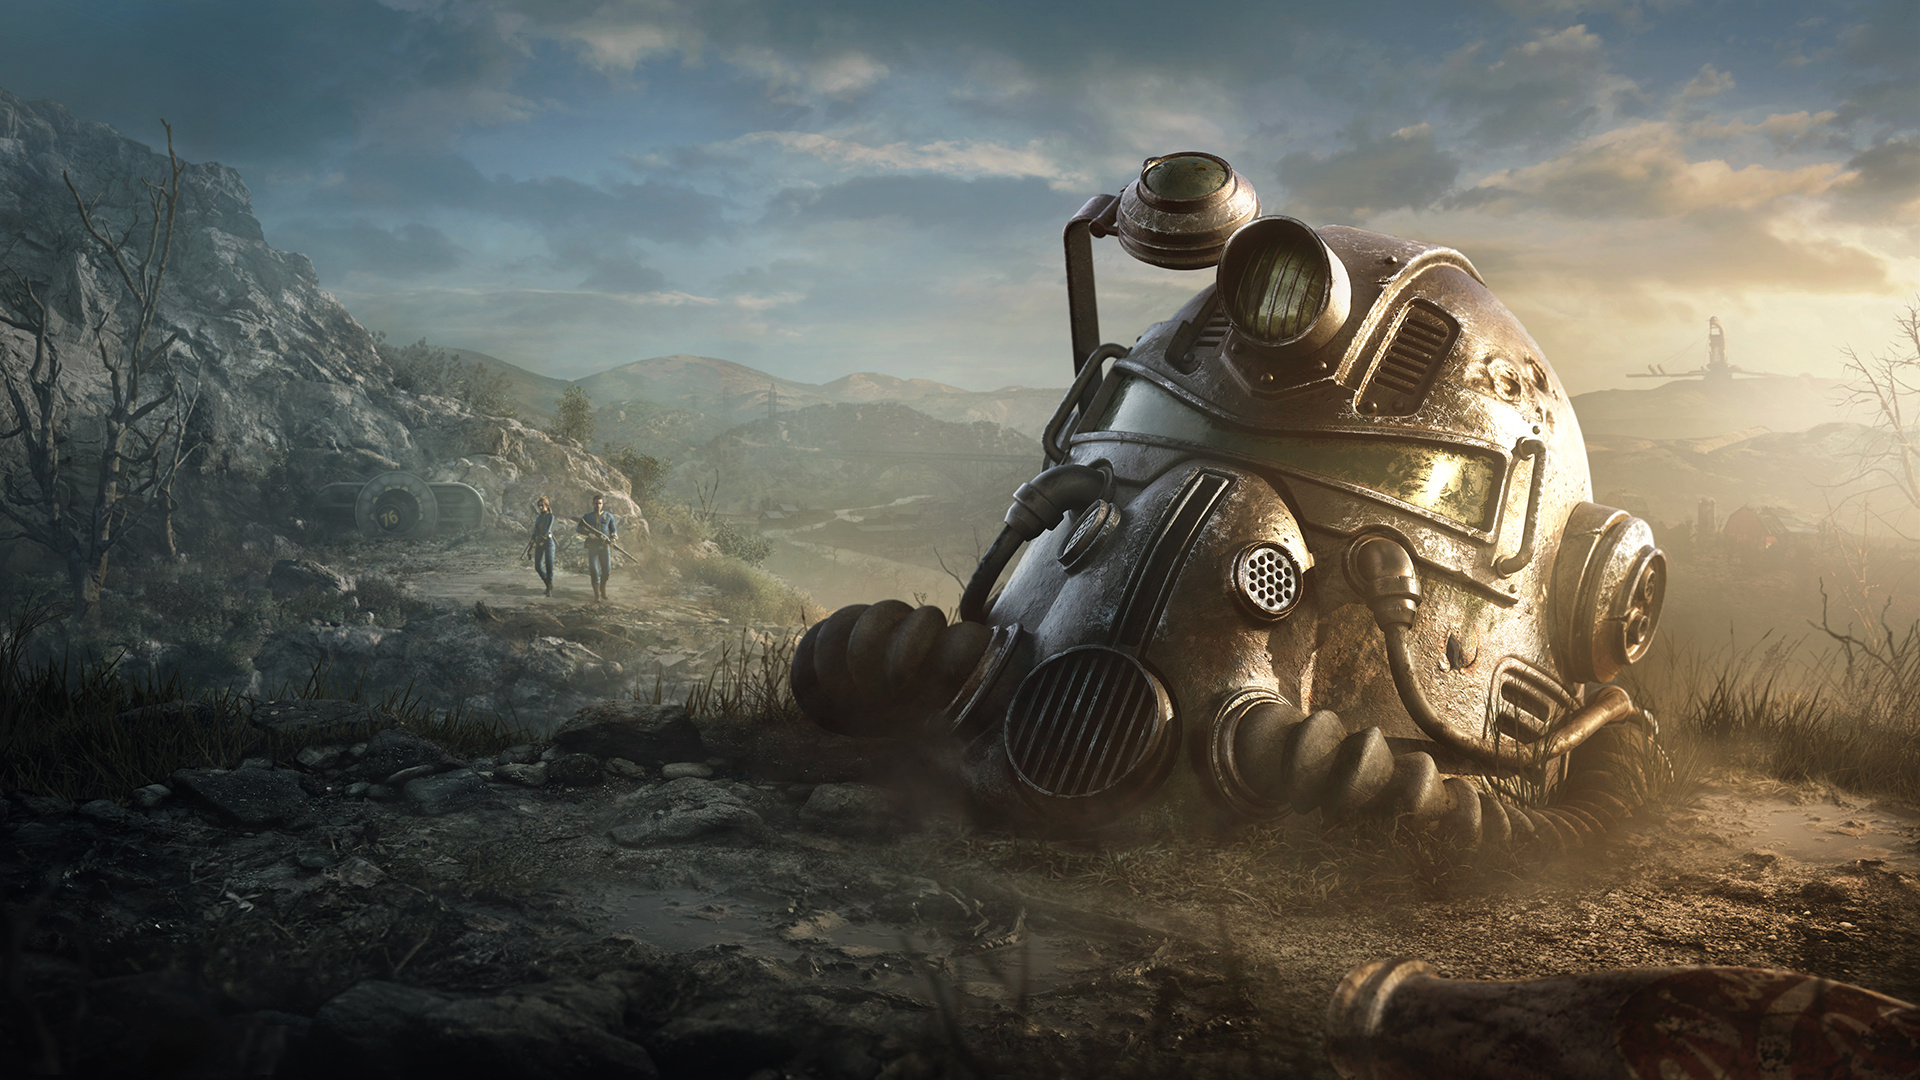 Image Media for Fallout 76 — Our Future Begins Campaign